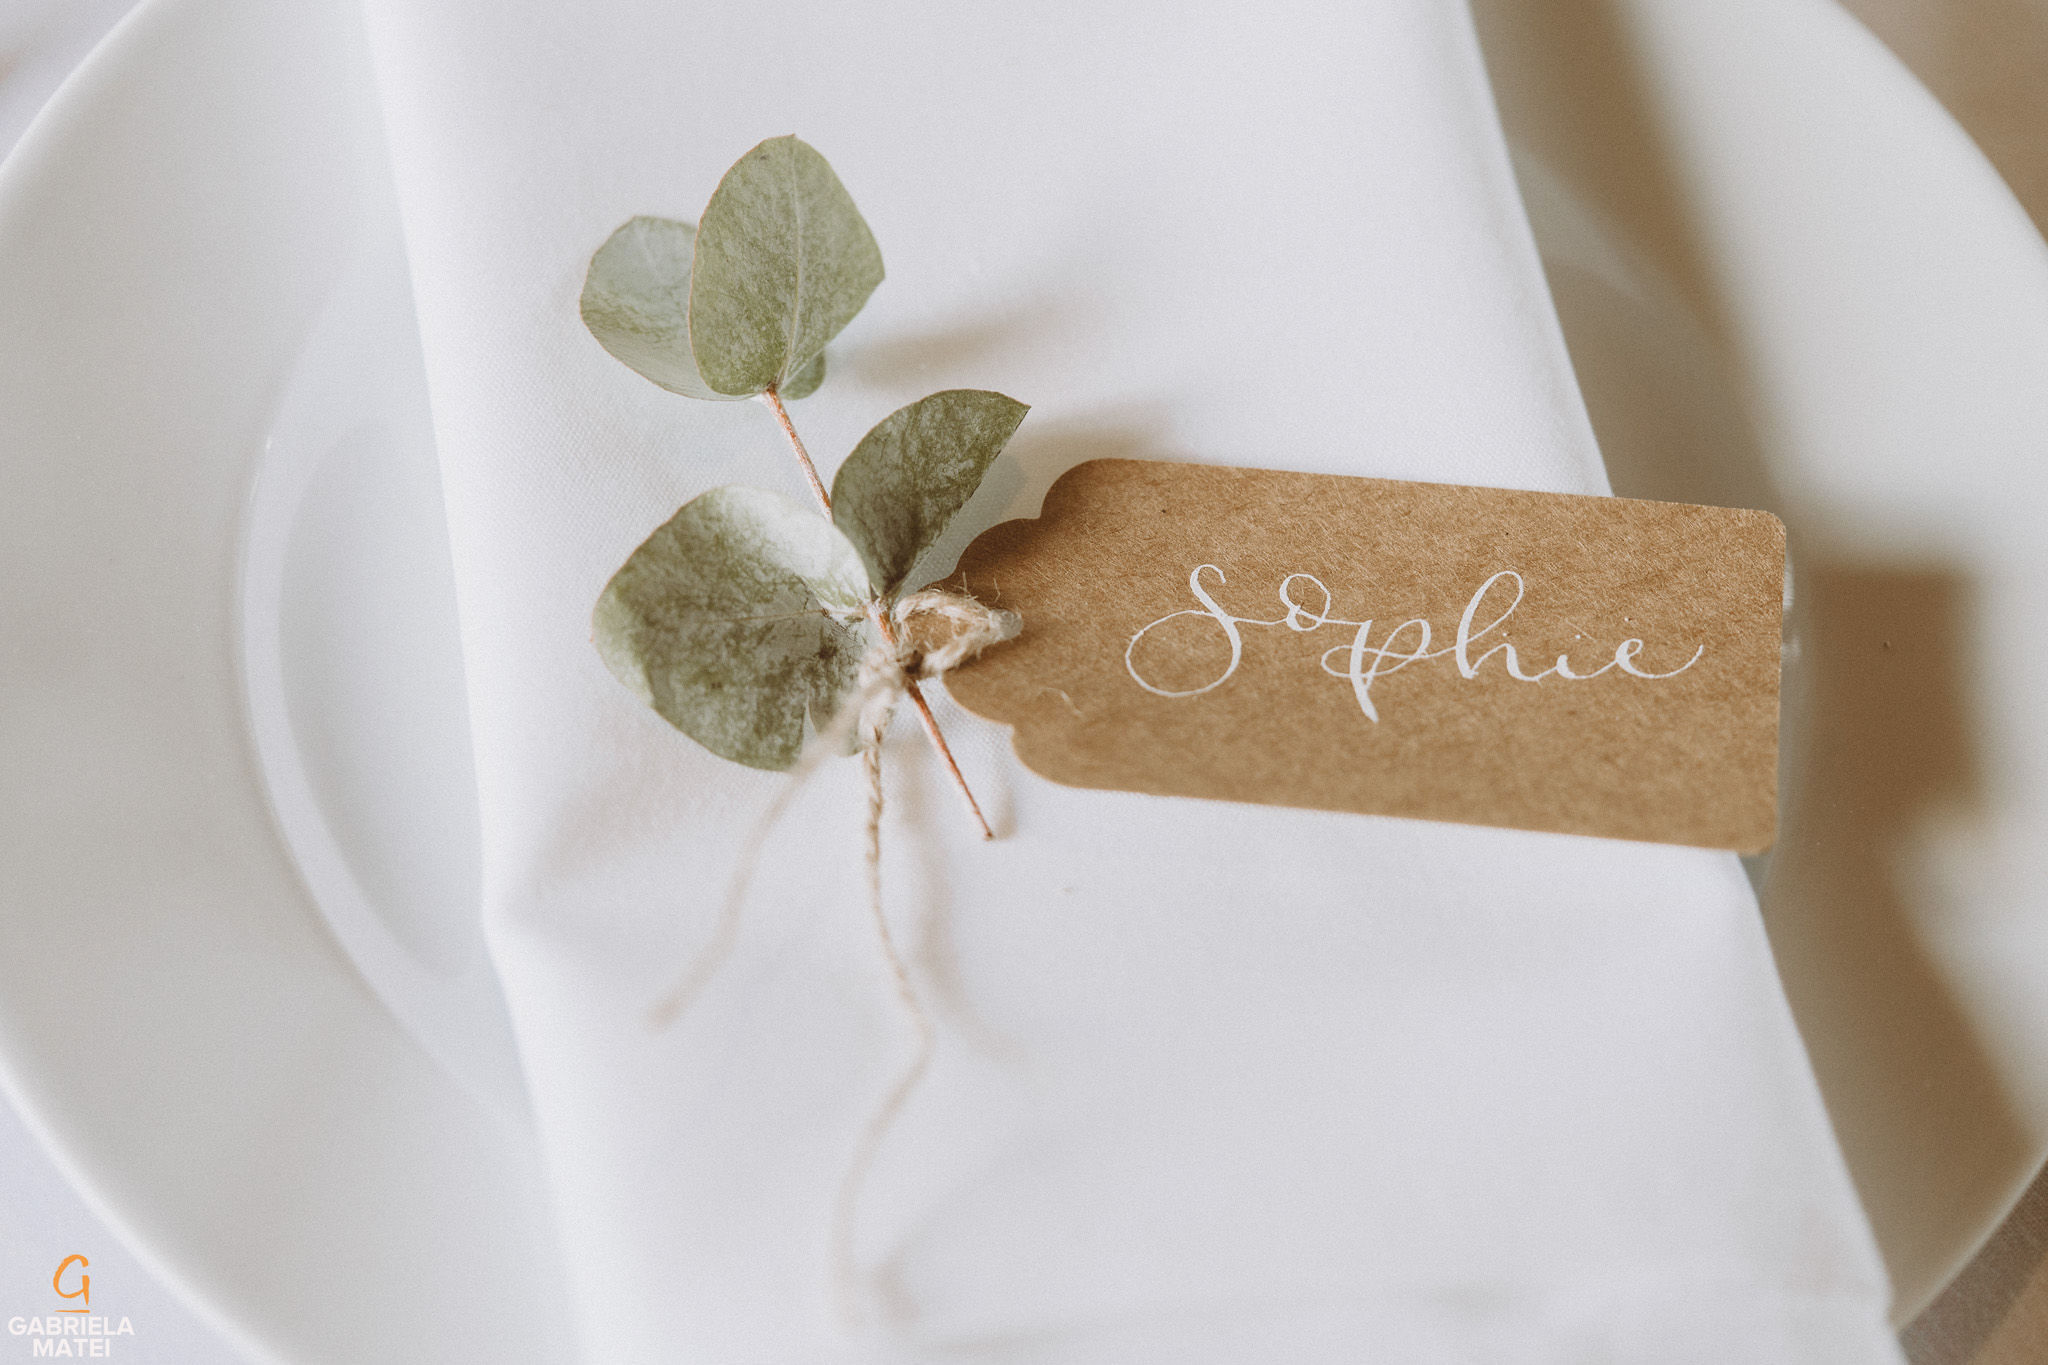 Wedding details table placements at South Stoke Barn wedding venue in Arundel